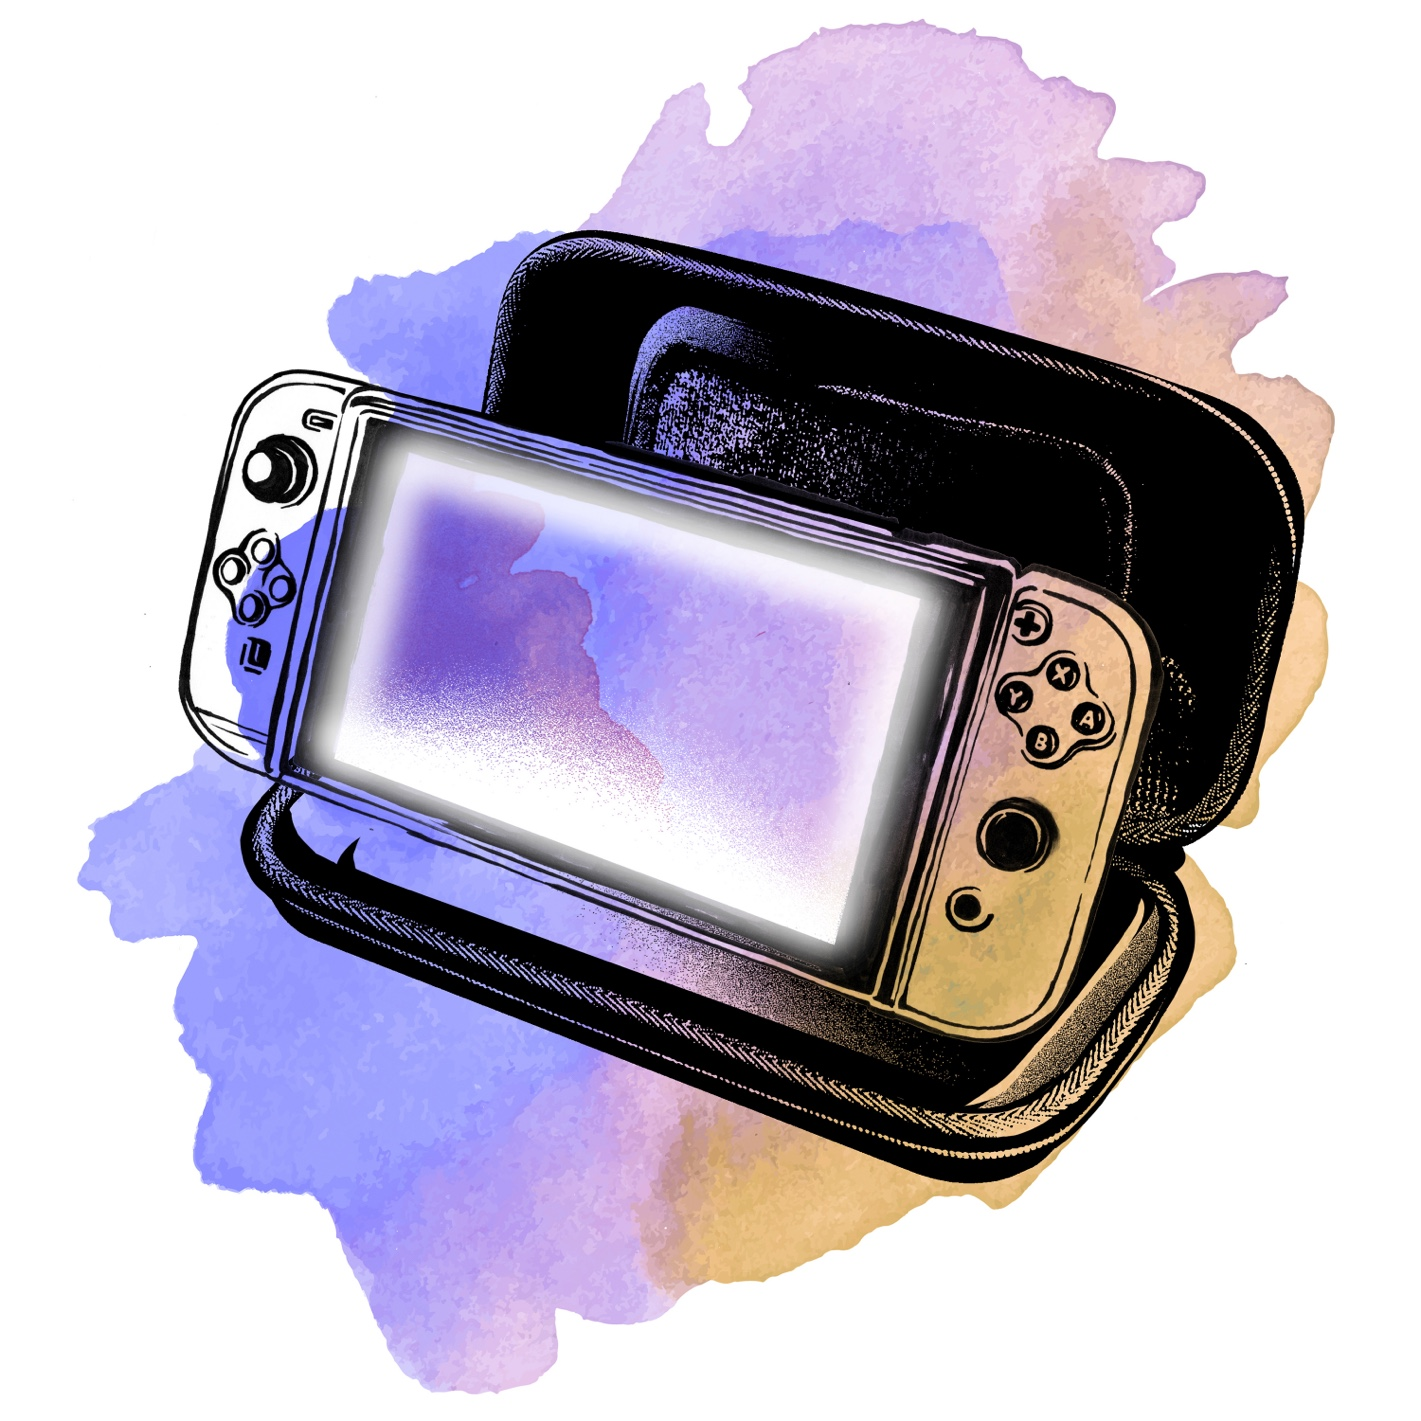 Watercolor illustration of Maitreyi's Nintendo Switch. Kids these days!